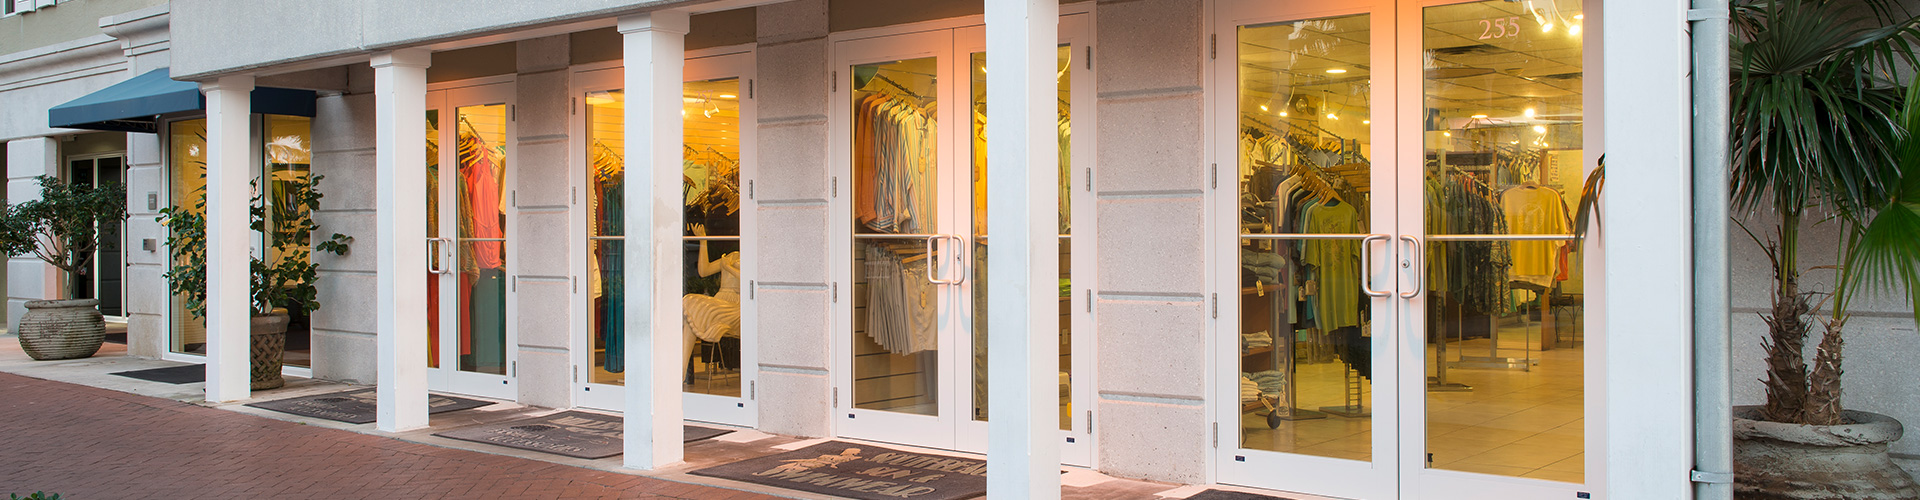 CGI Commercial storefront windows and doors can beautify and secure retail spaces.